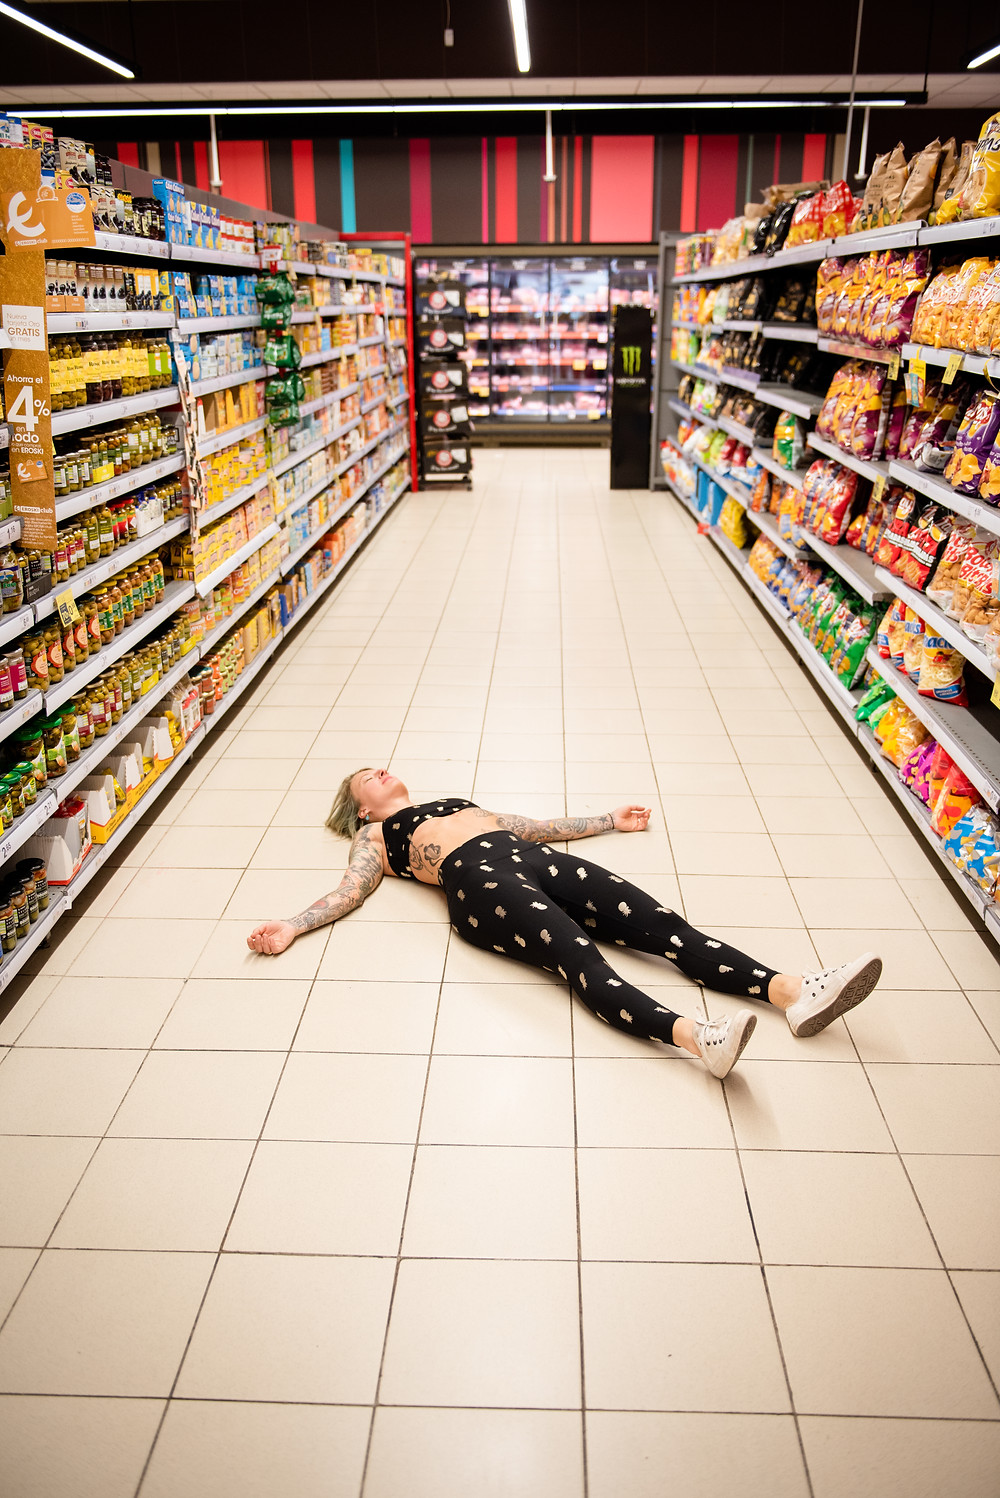 Final Resting Pose at the supermarket